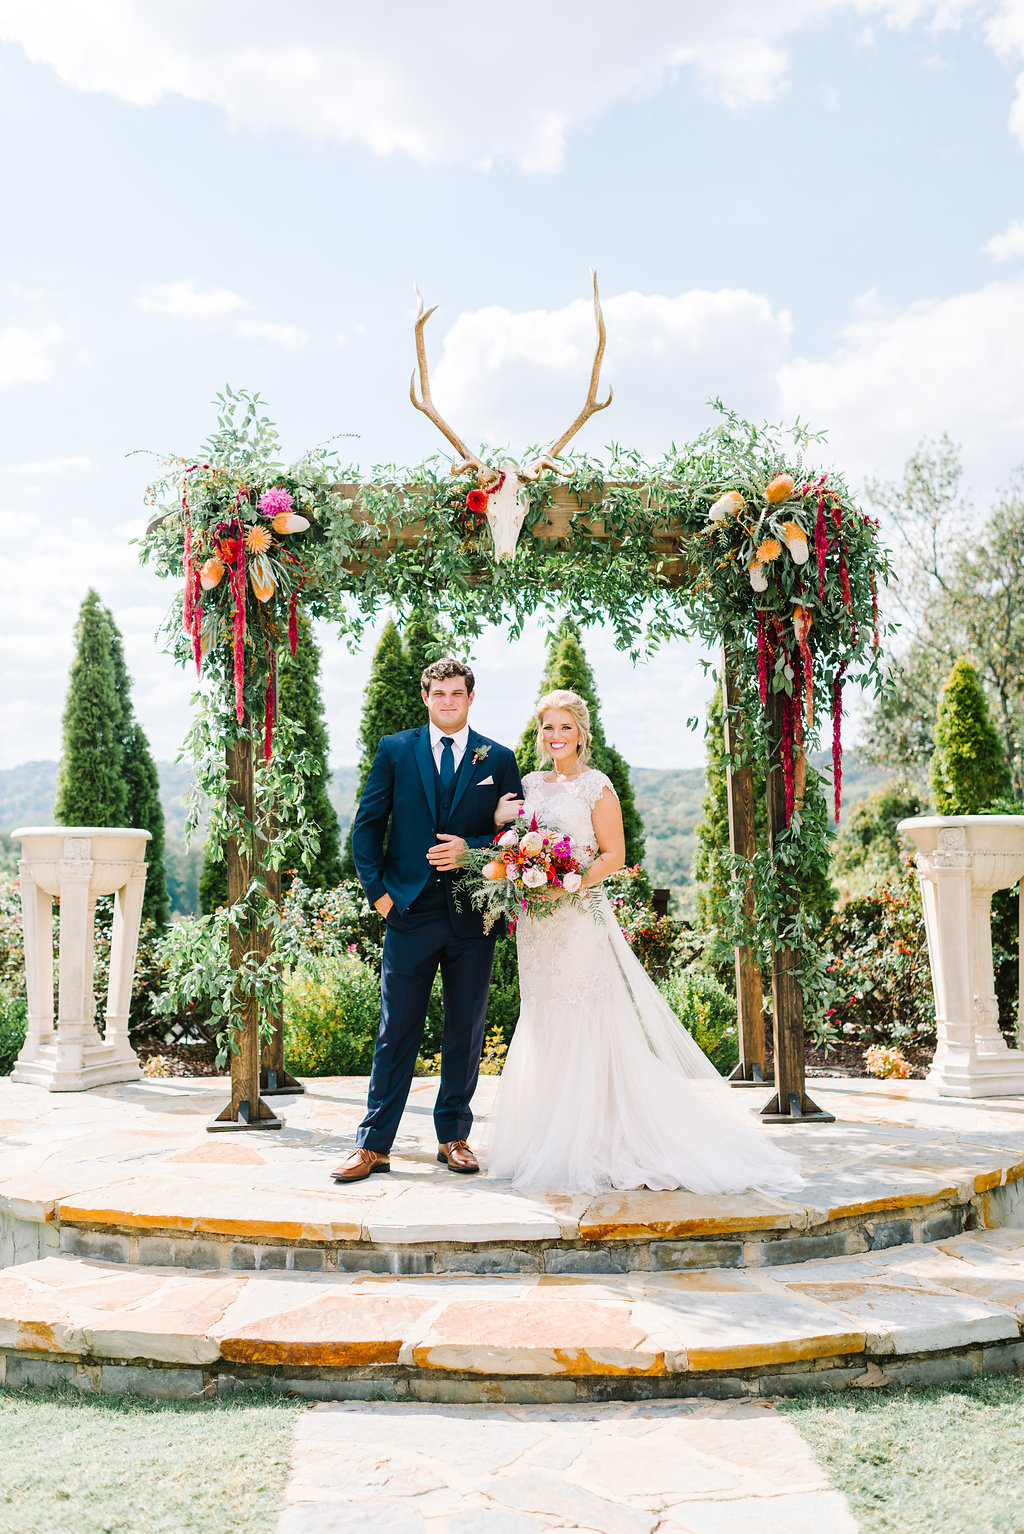 boho bride and groom - photo by Cathrine Taylor Photography https://ruffledblog.com/colorful-alabama-wedding-with-desert-accents